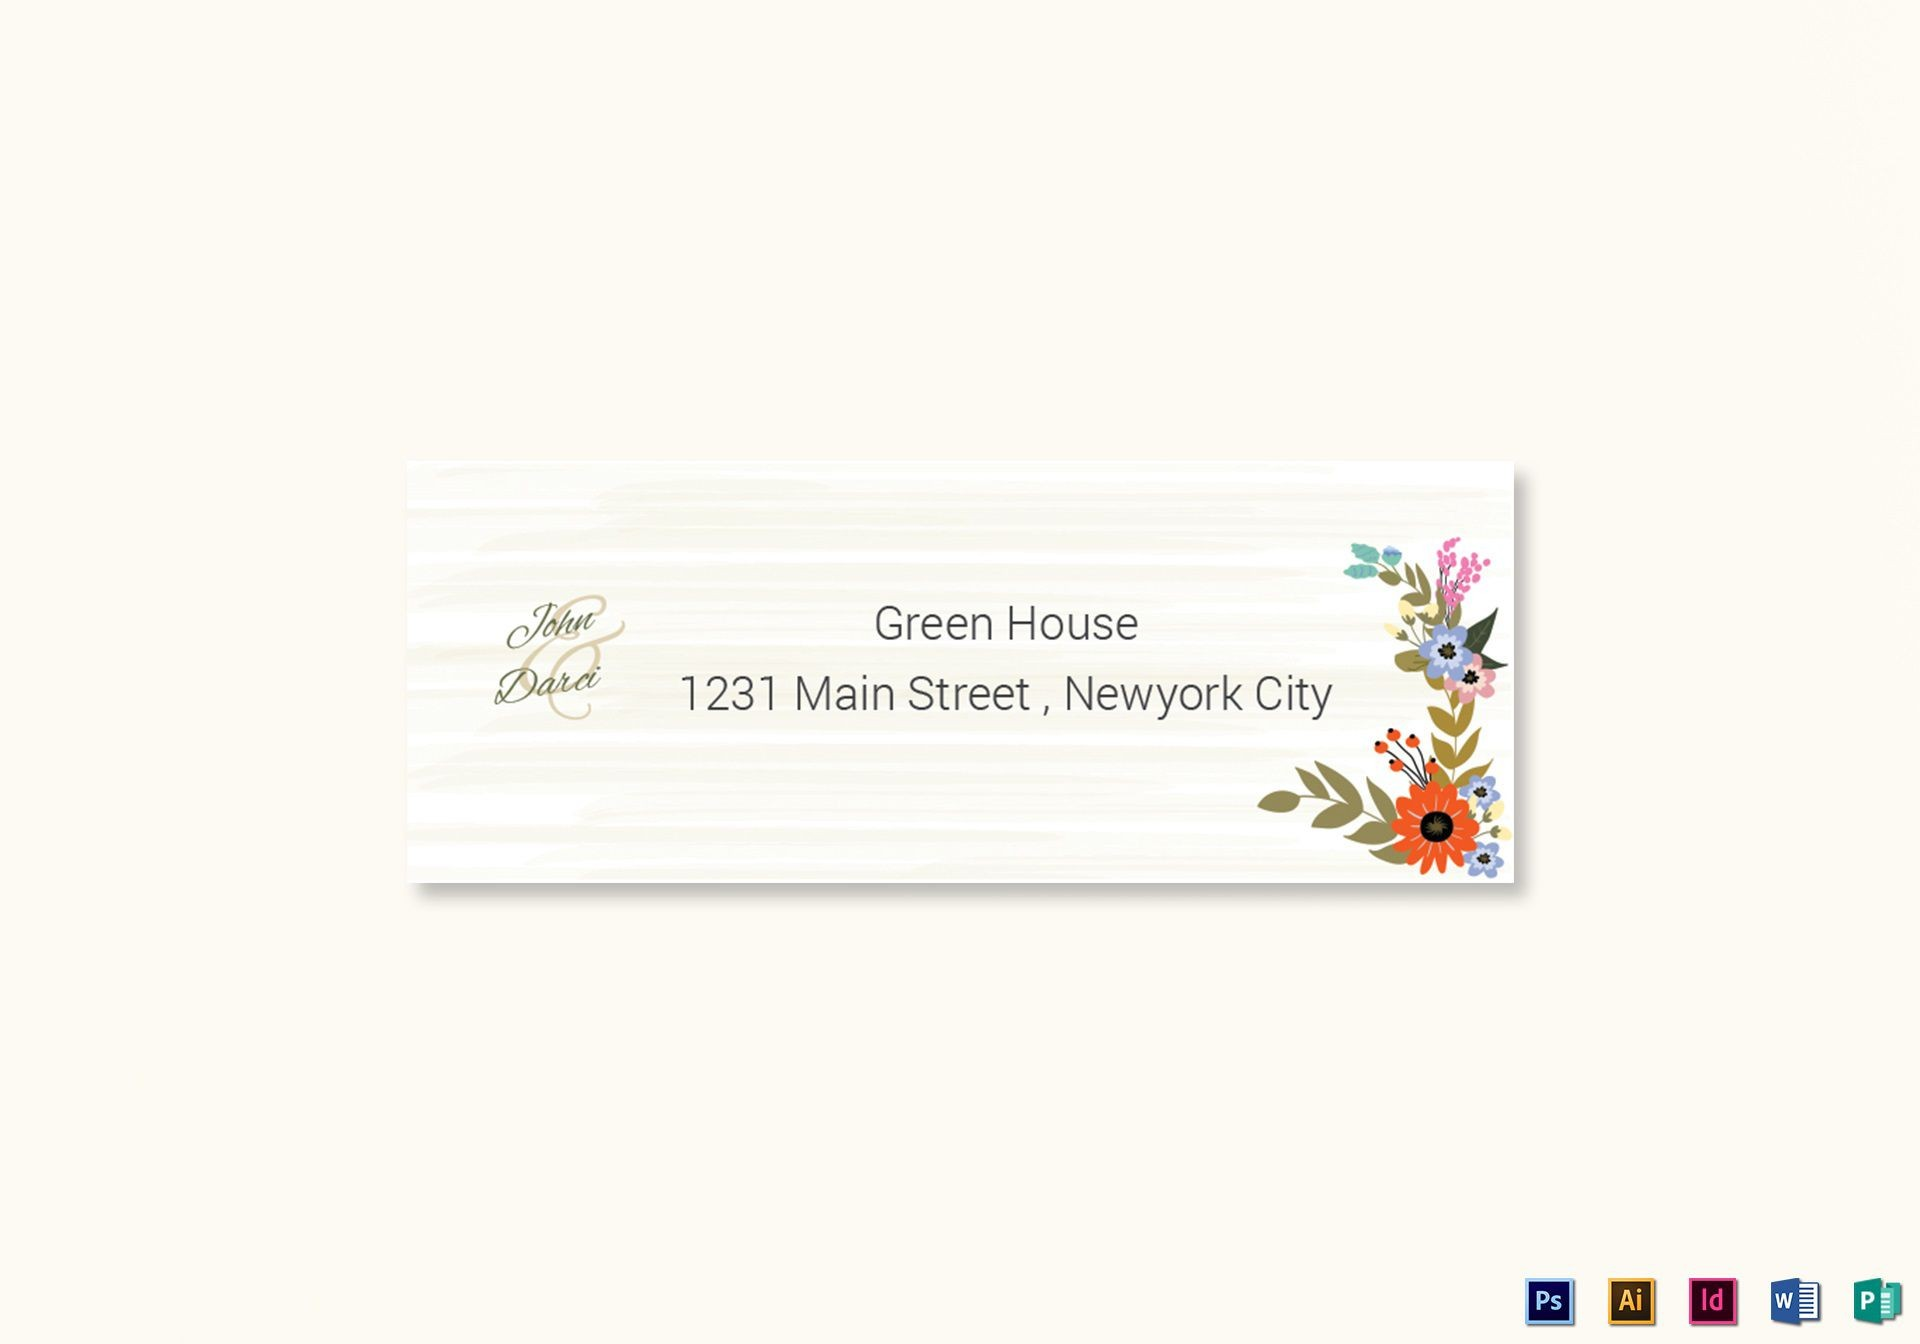 009 Top Wedding Addres Label Template High Resolution  Free Printable1920